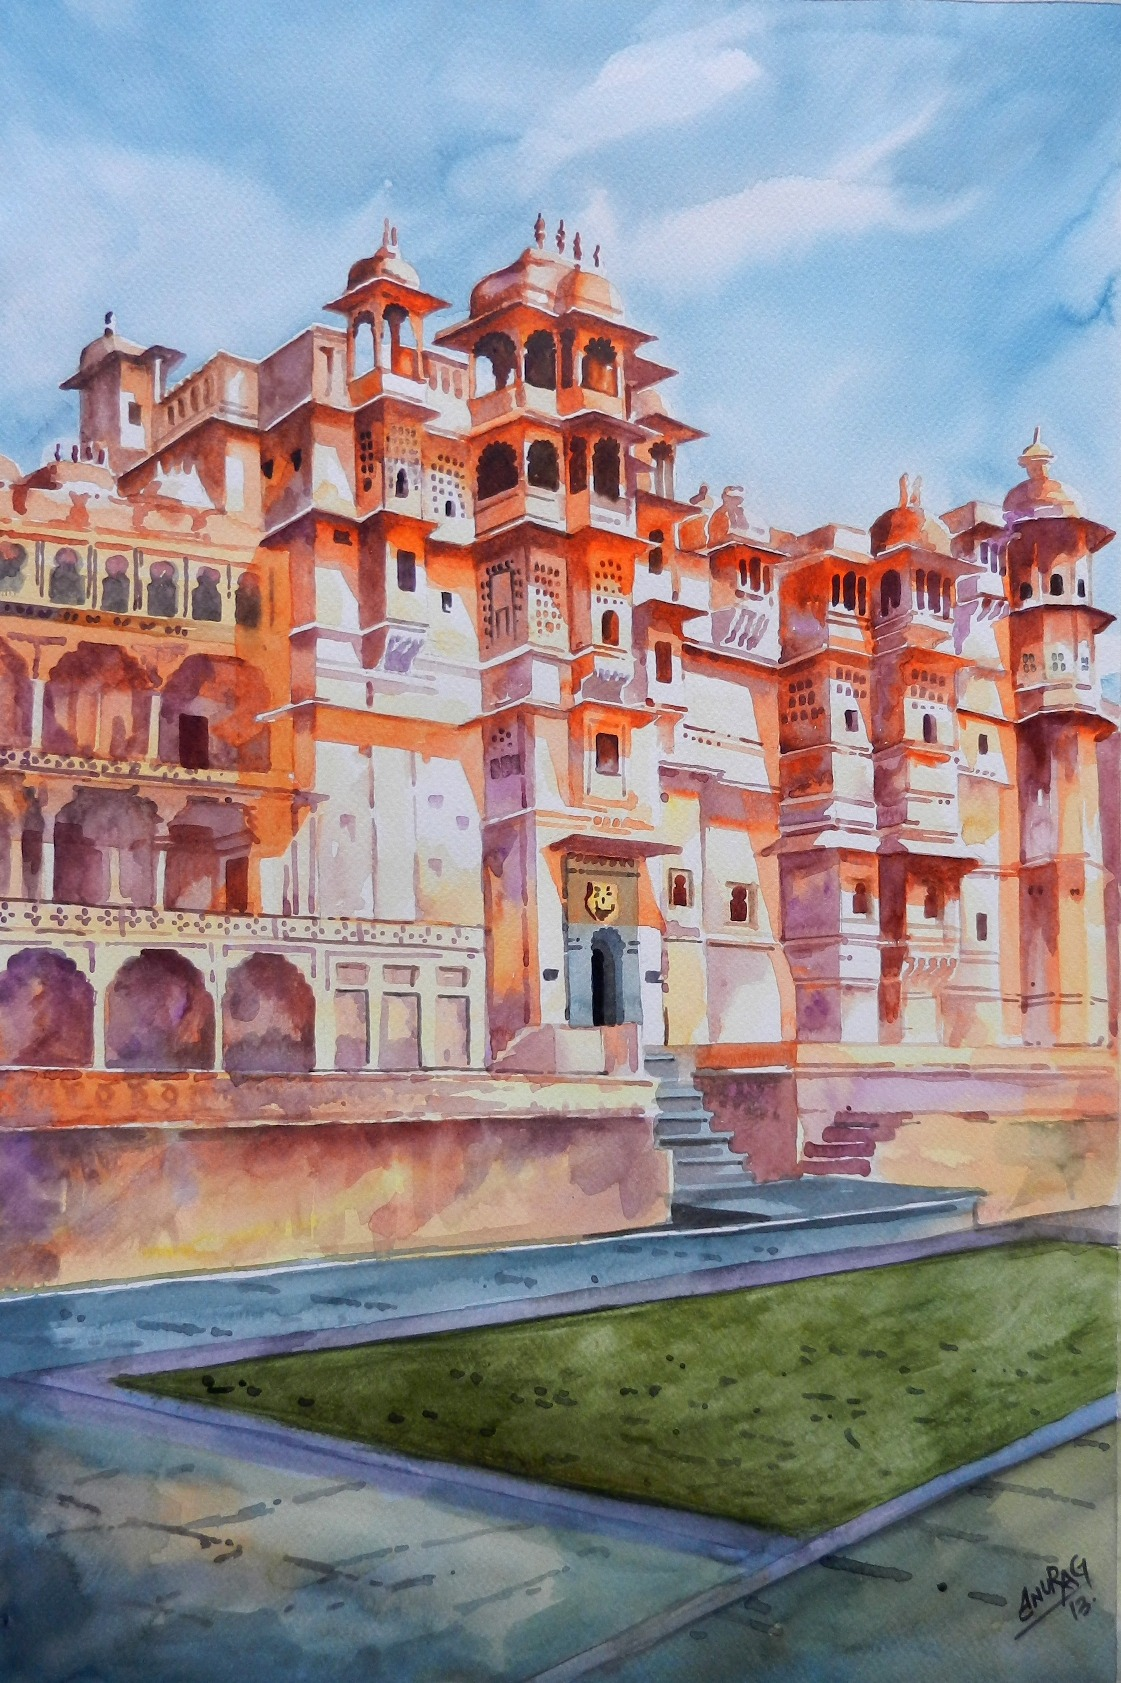 The City Palace Udaipur 1 4277